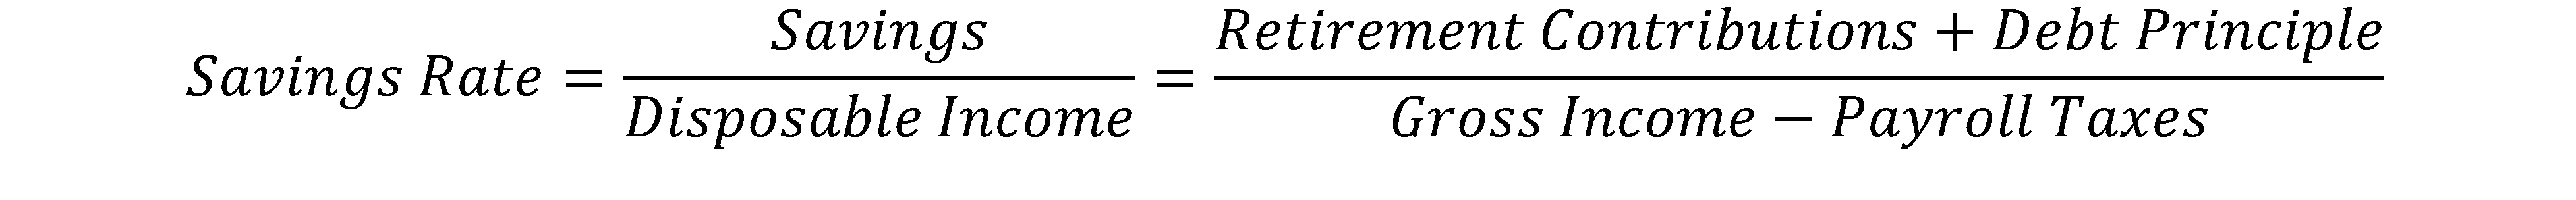 savings-rate-equation